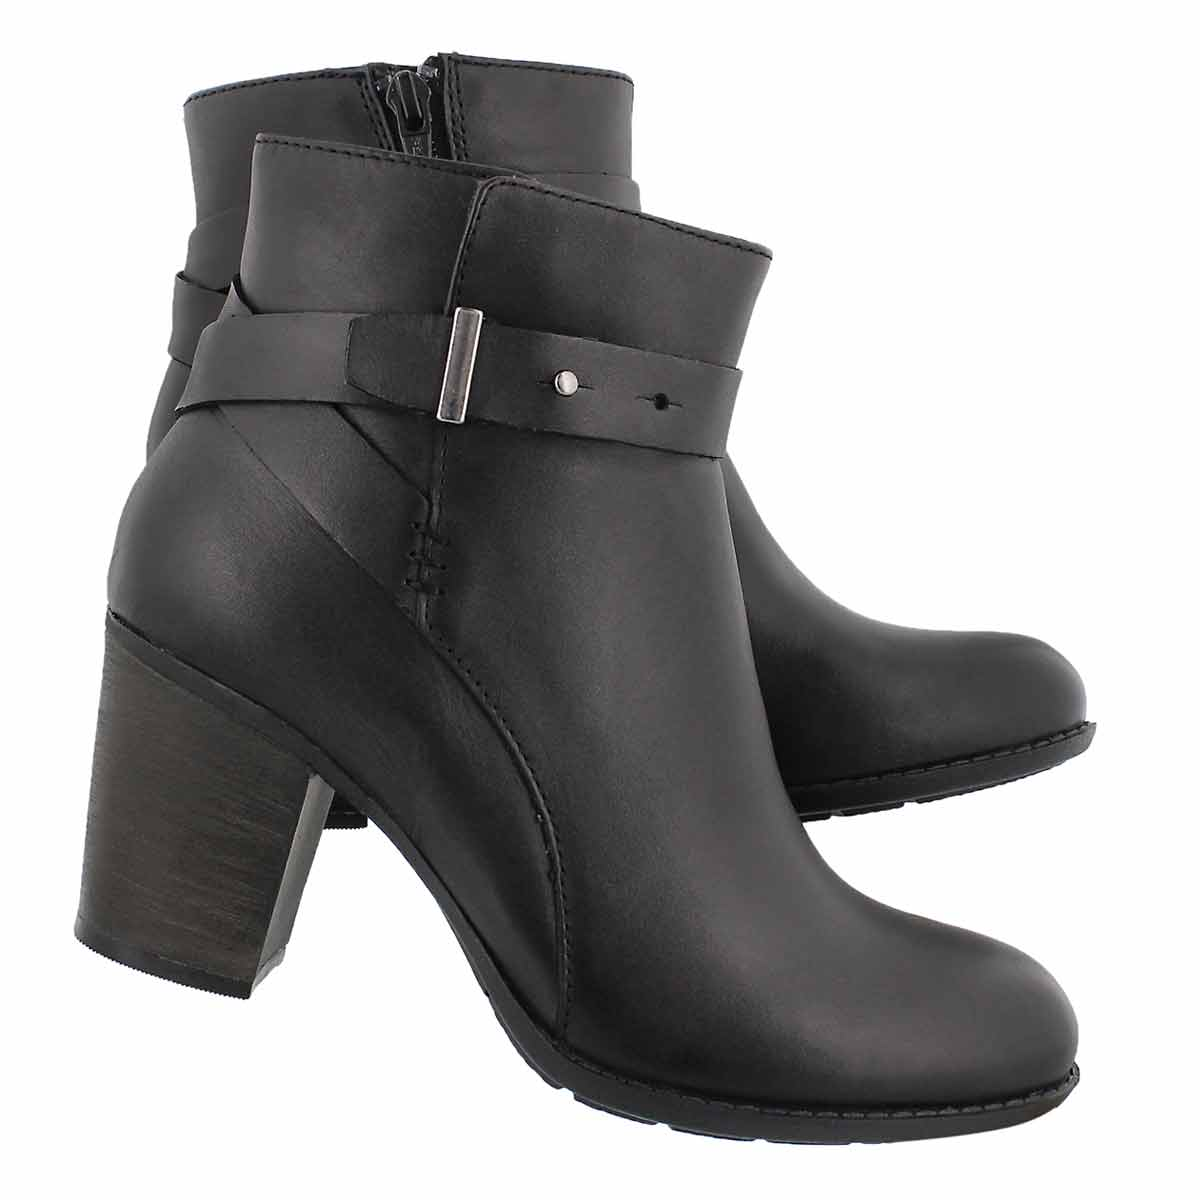 Lds Enfield Sari black dress bootie